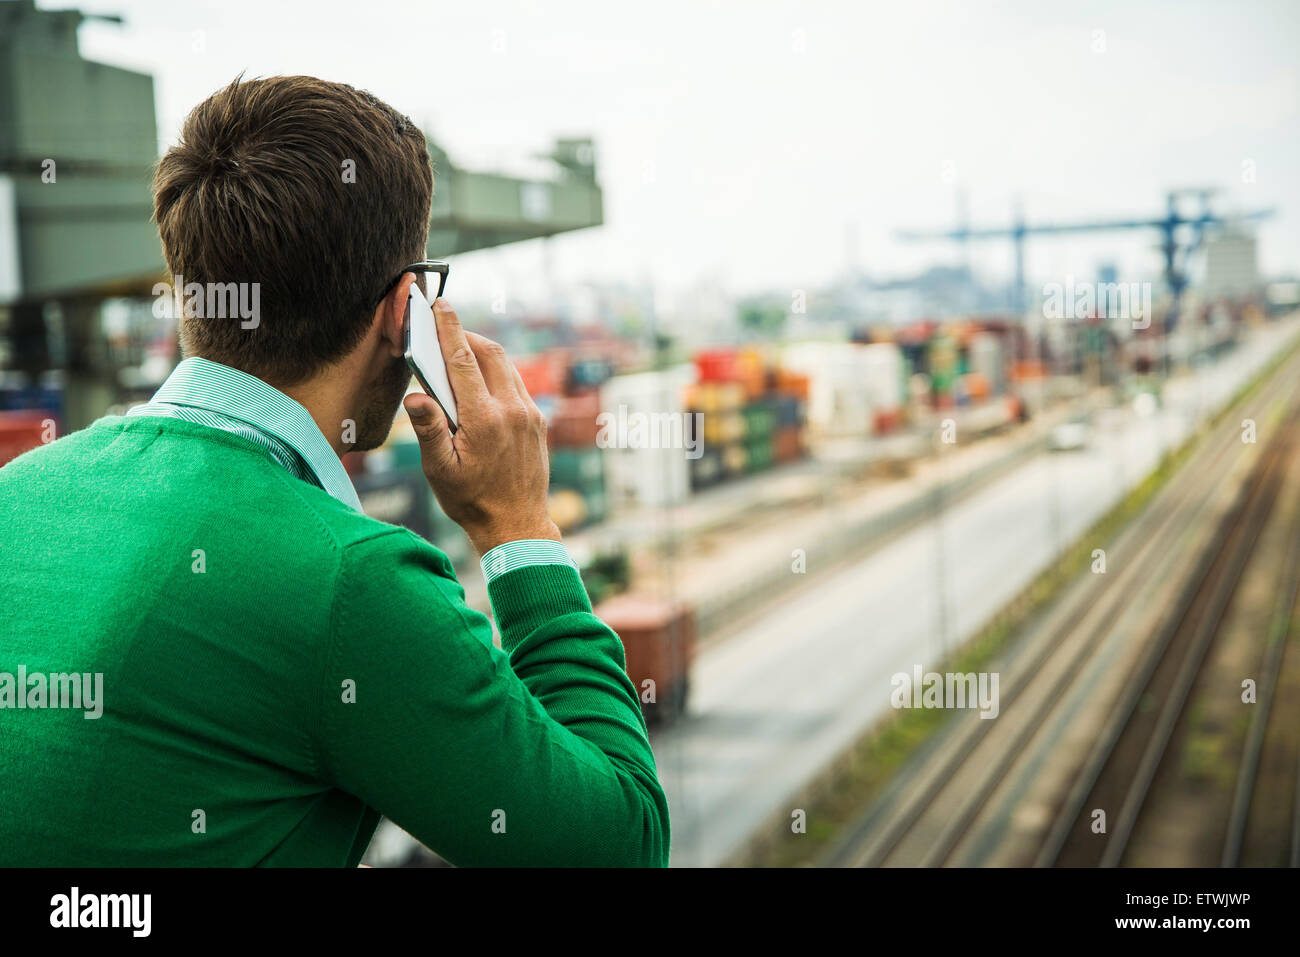 Man at freight yard talking on cell phone - Stock Image